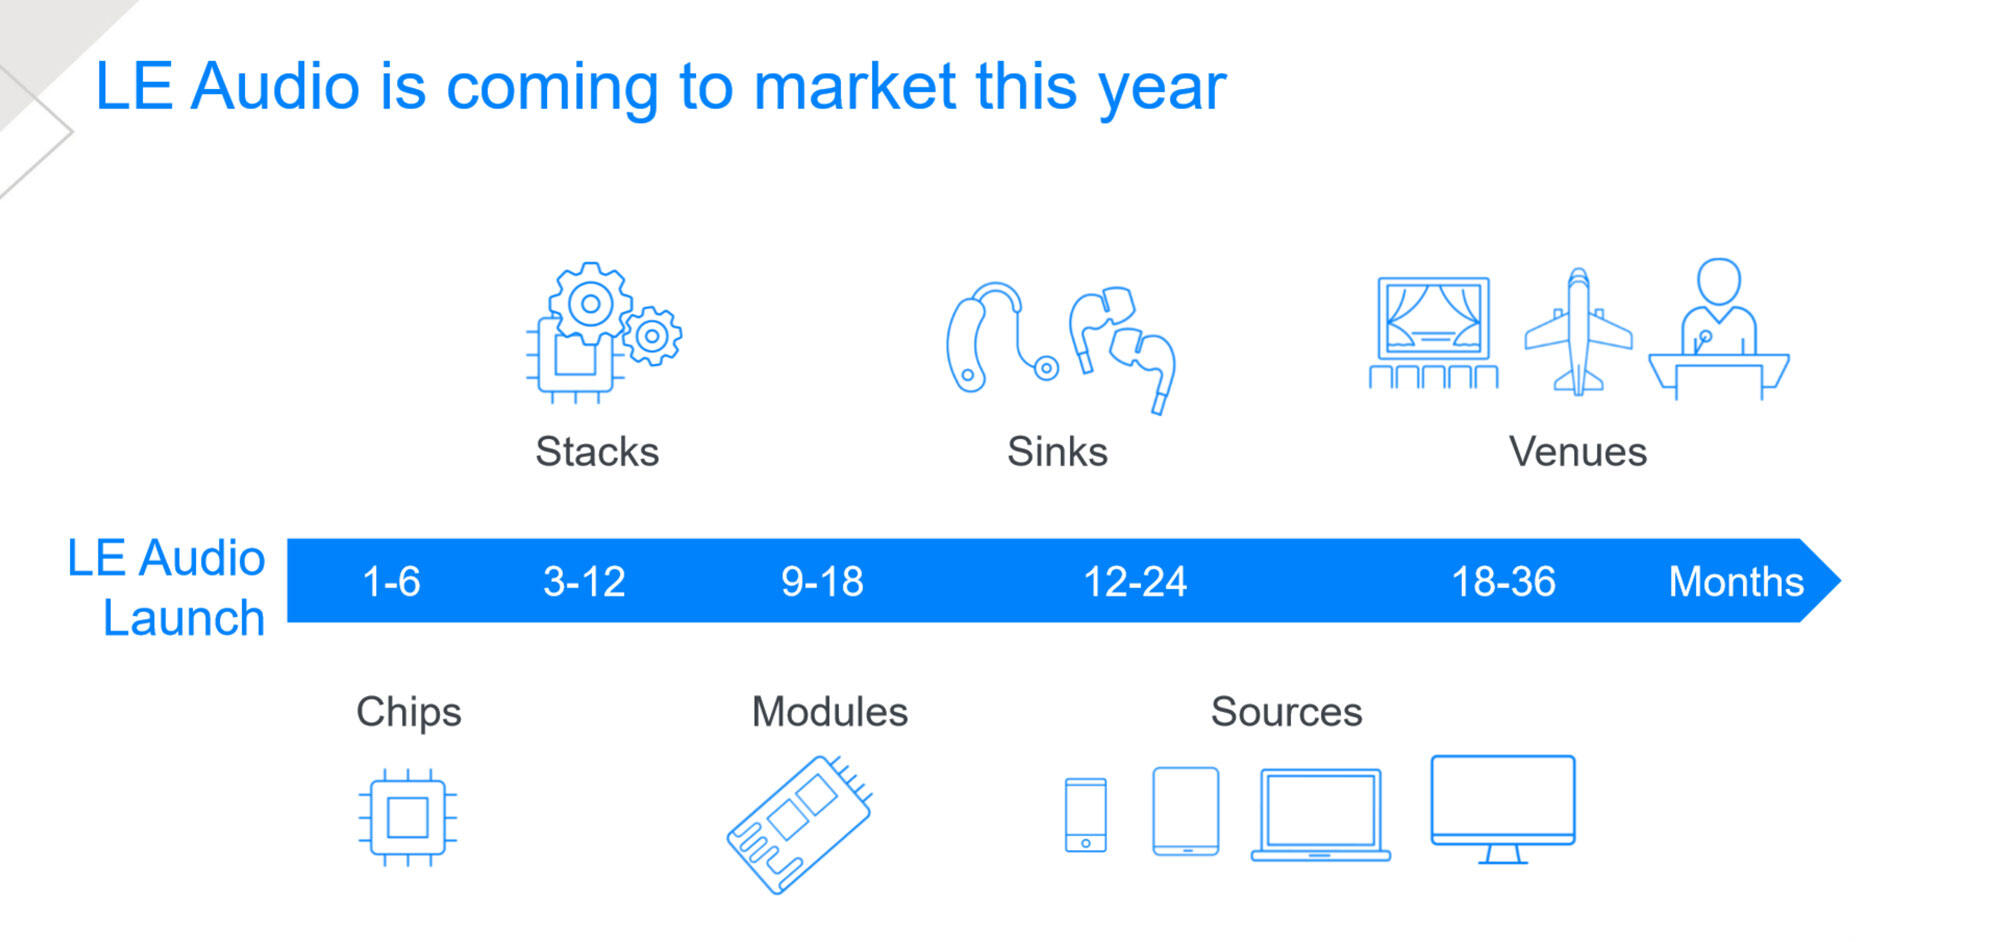 Expect the first Bluetooth devices supporting LE Audio to arrive in 2021.